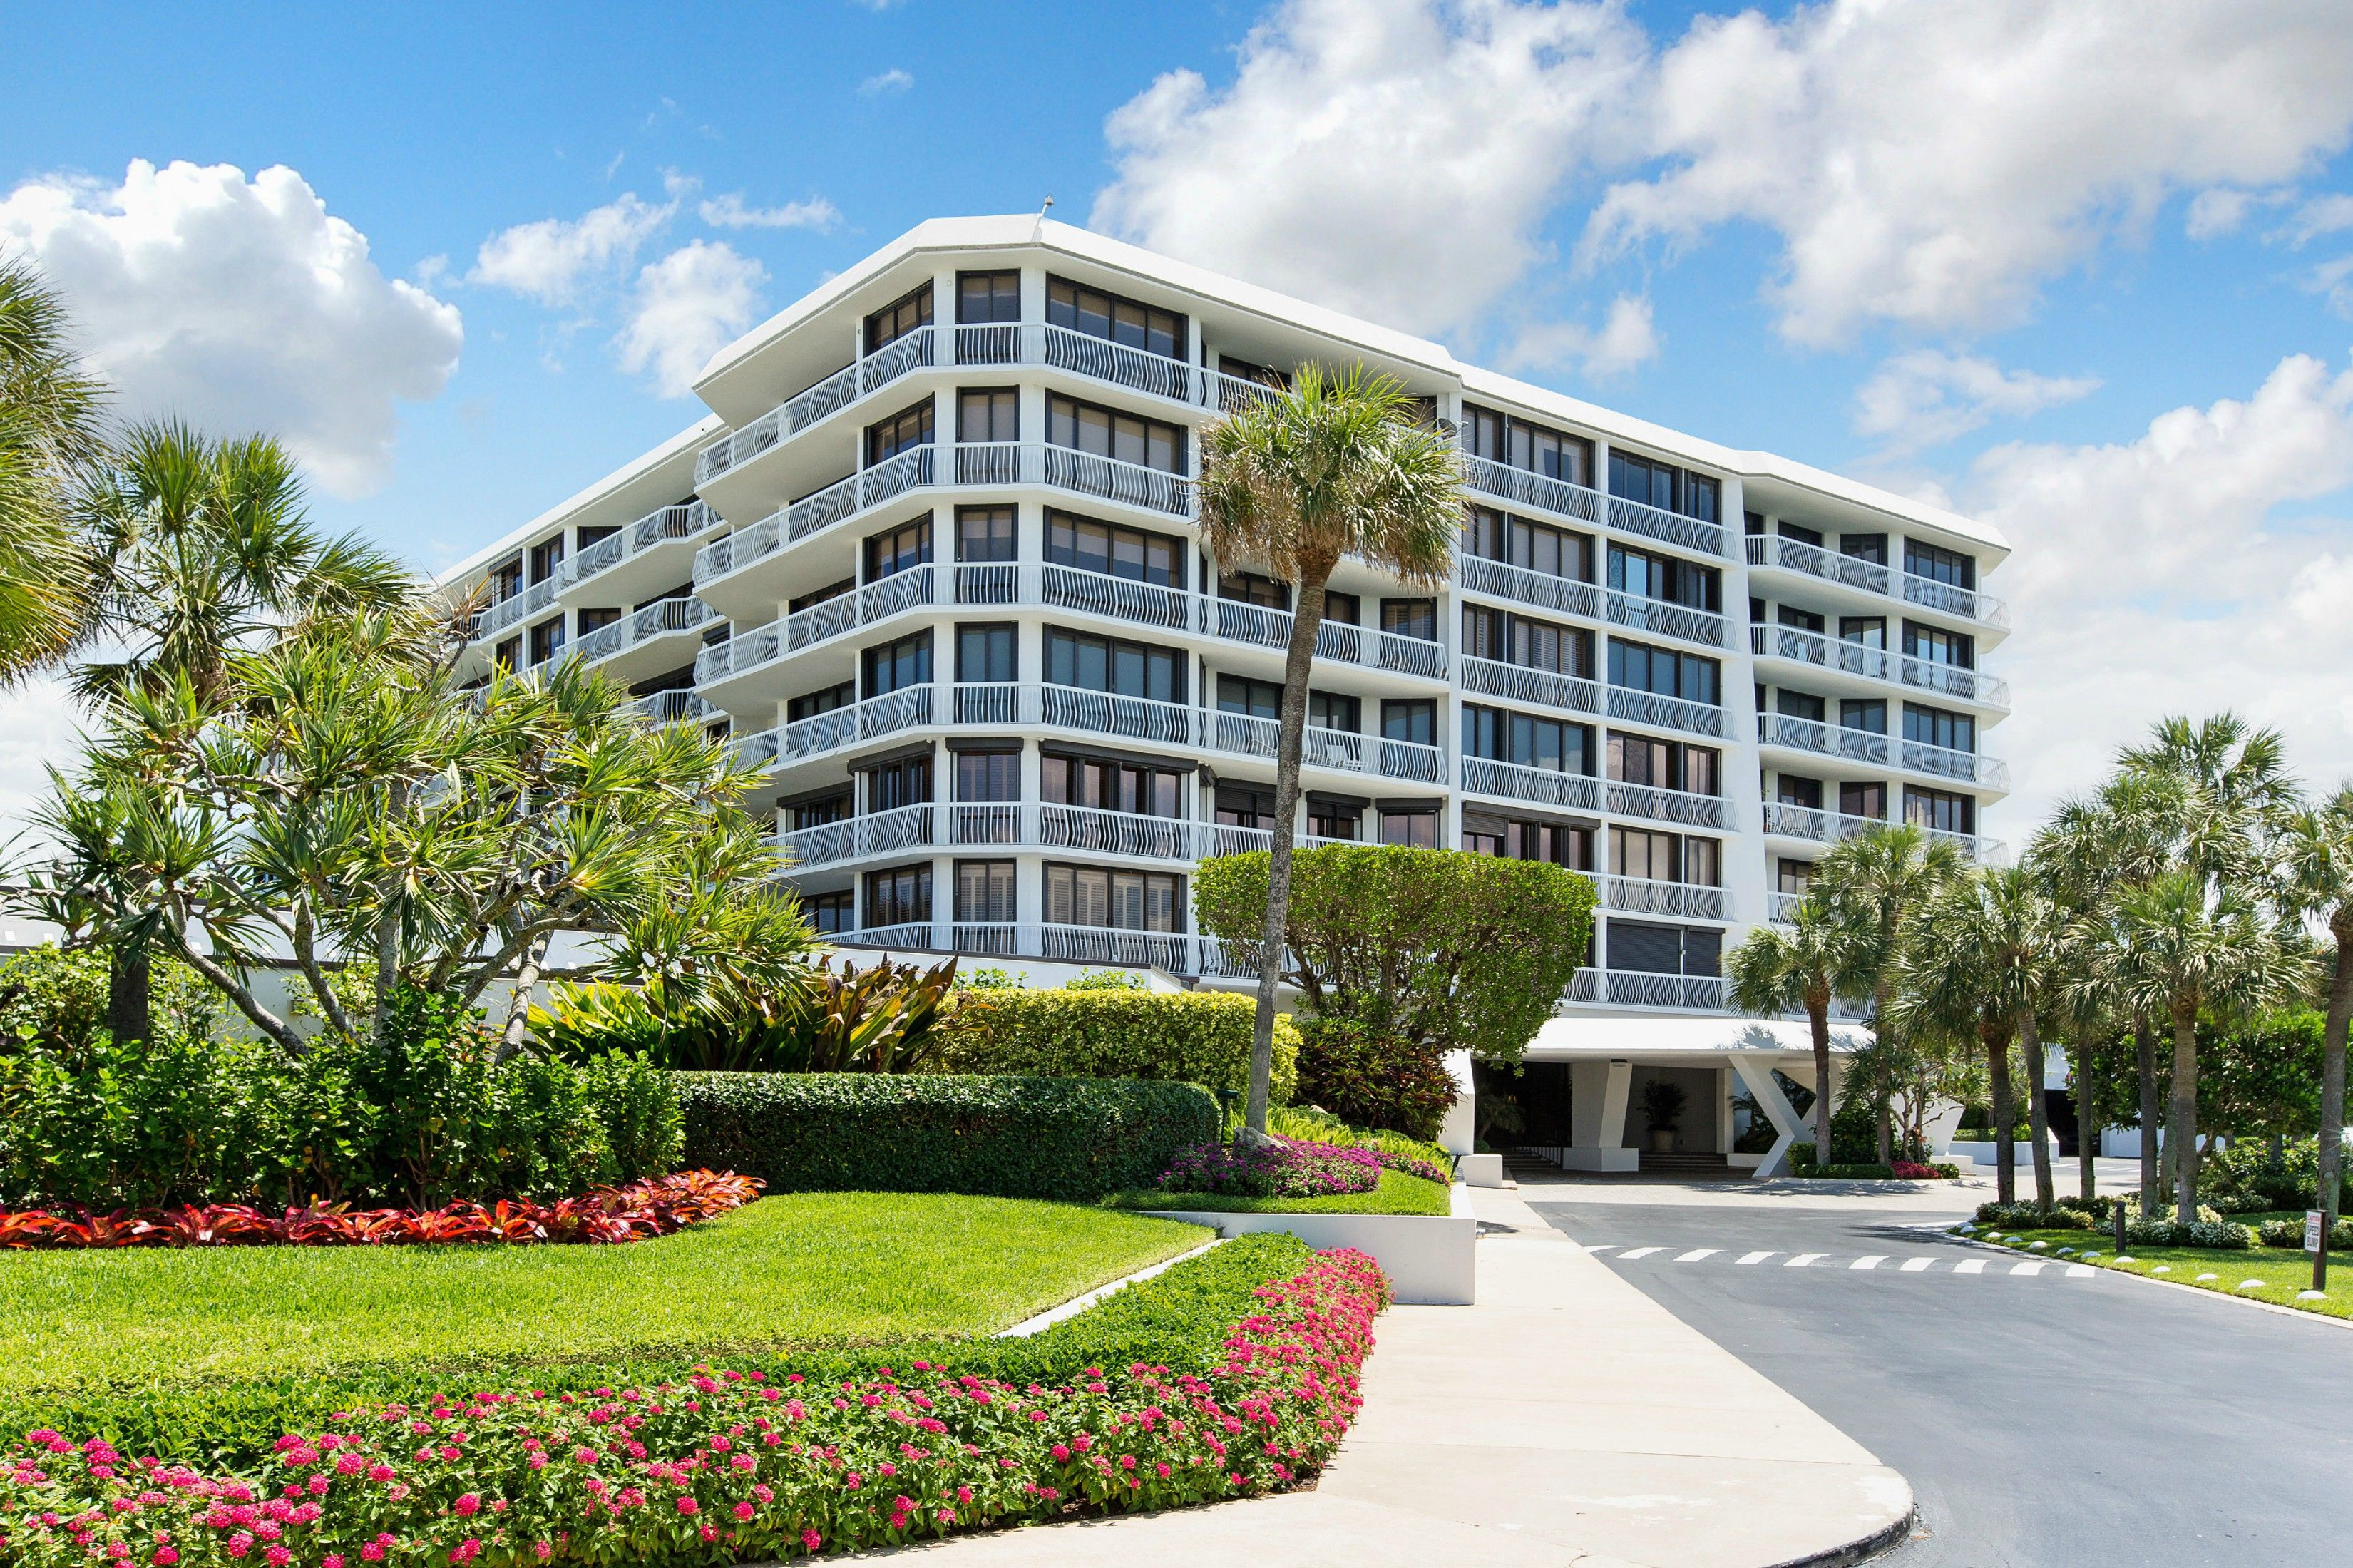 Sloans Curve One Of Palm Beach S Finest Full Service Buildings Directly On The Ocean Palm Beach Real Estate Luxury Real Estate Palm Beach Real Estate